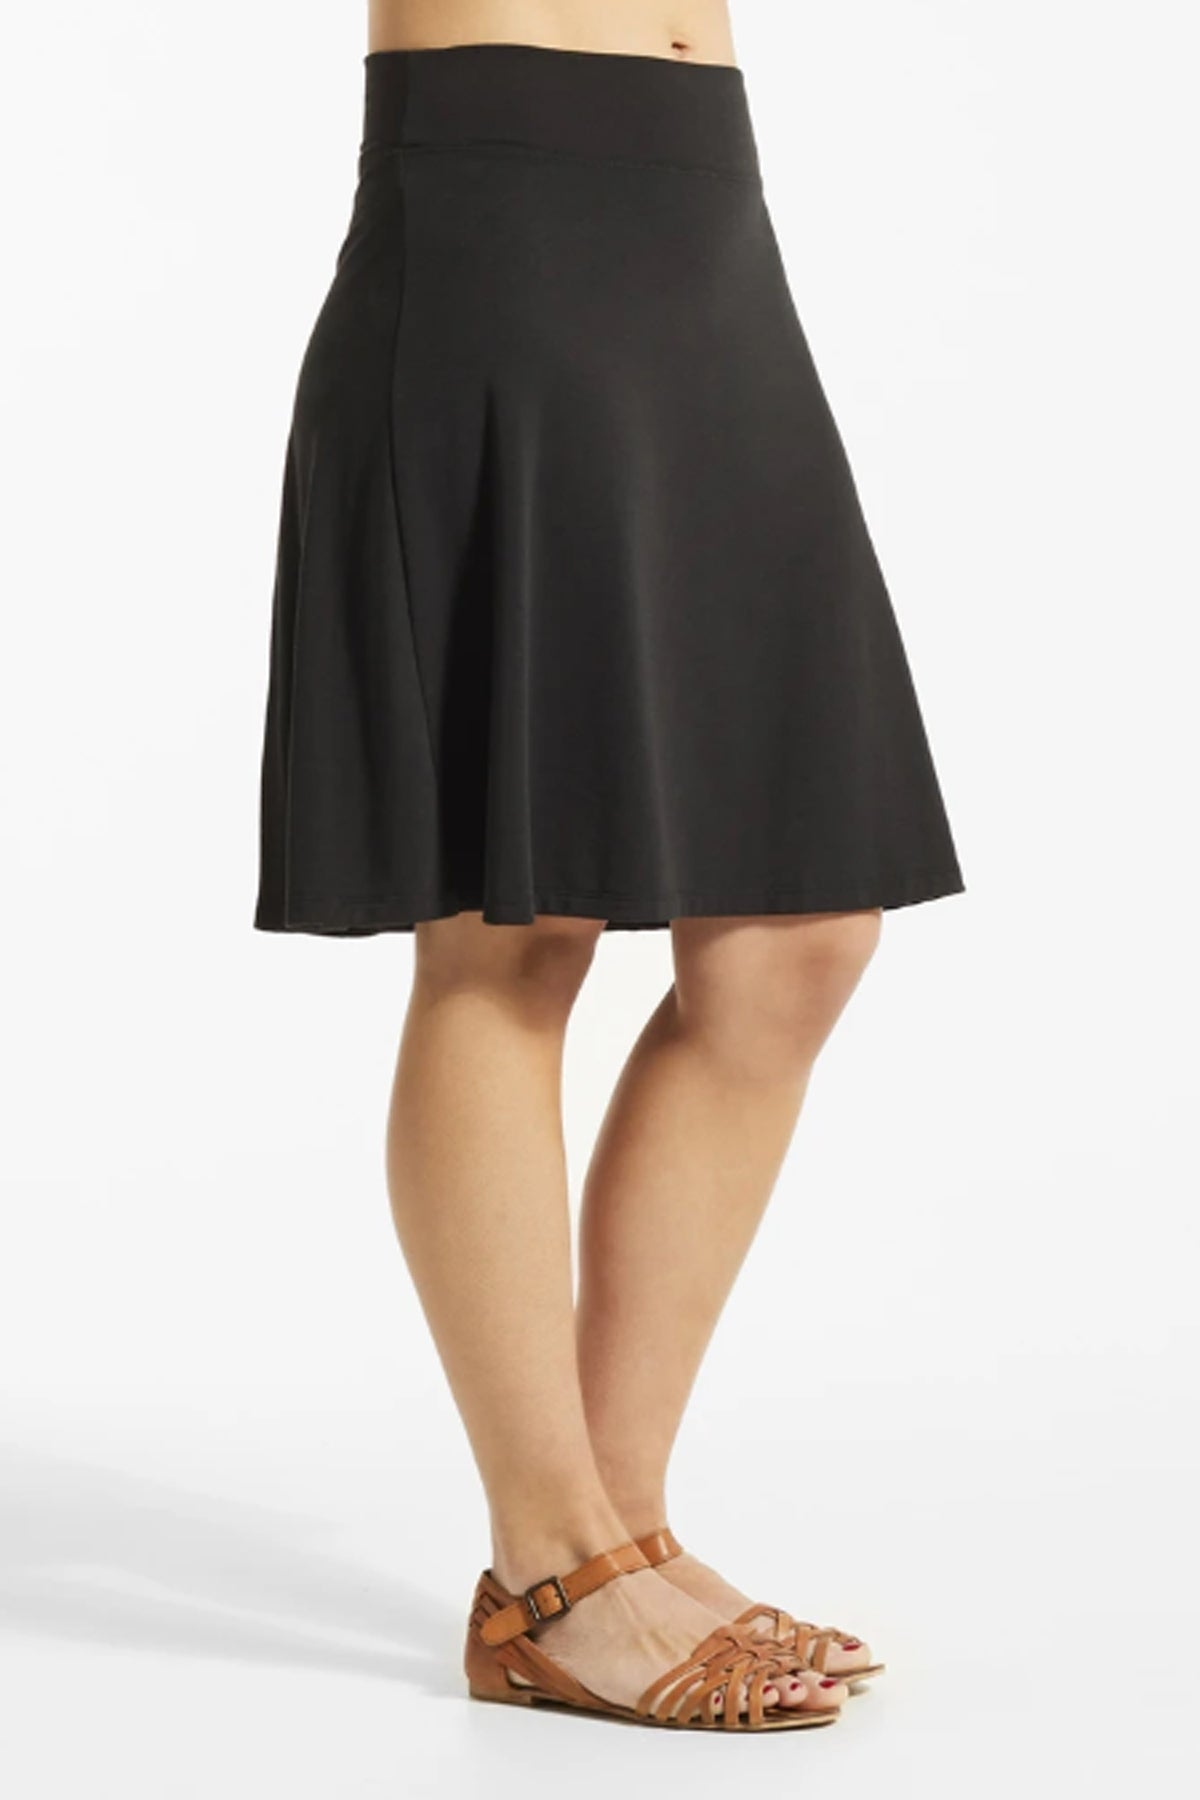 JIF Skirt by FIG, Black, side view, A-line, Drirelease fabric, wide waistband, sizes XS to XL, made in Canada